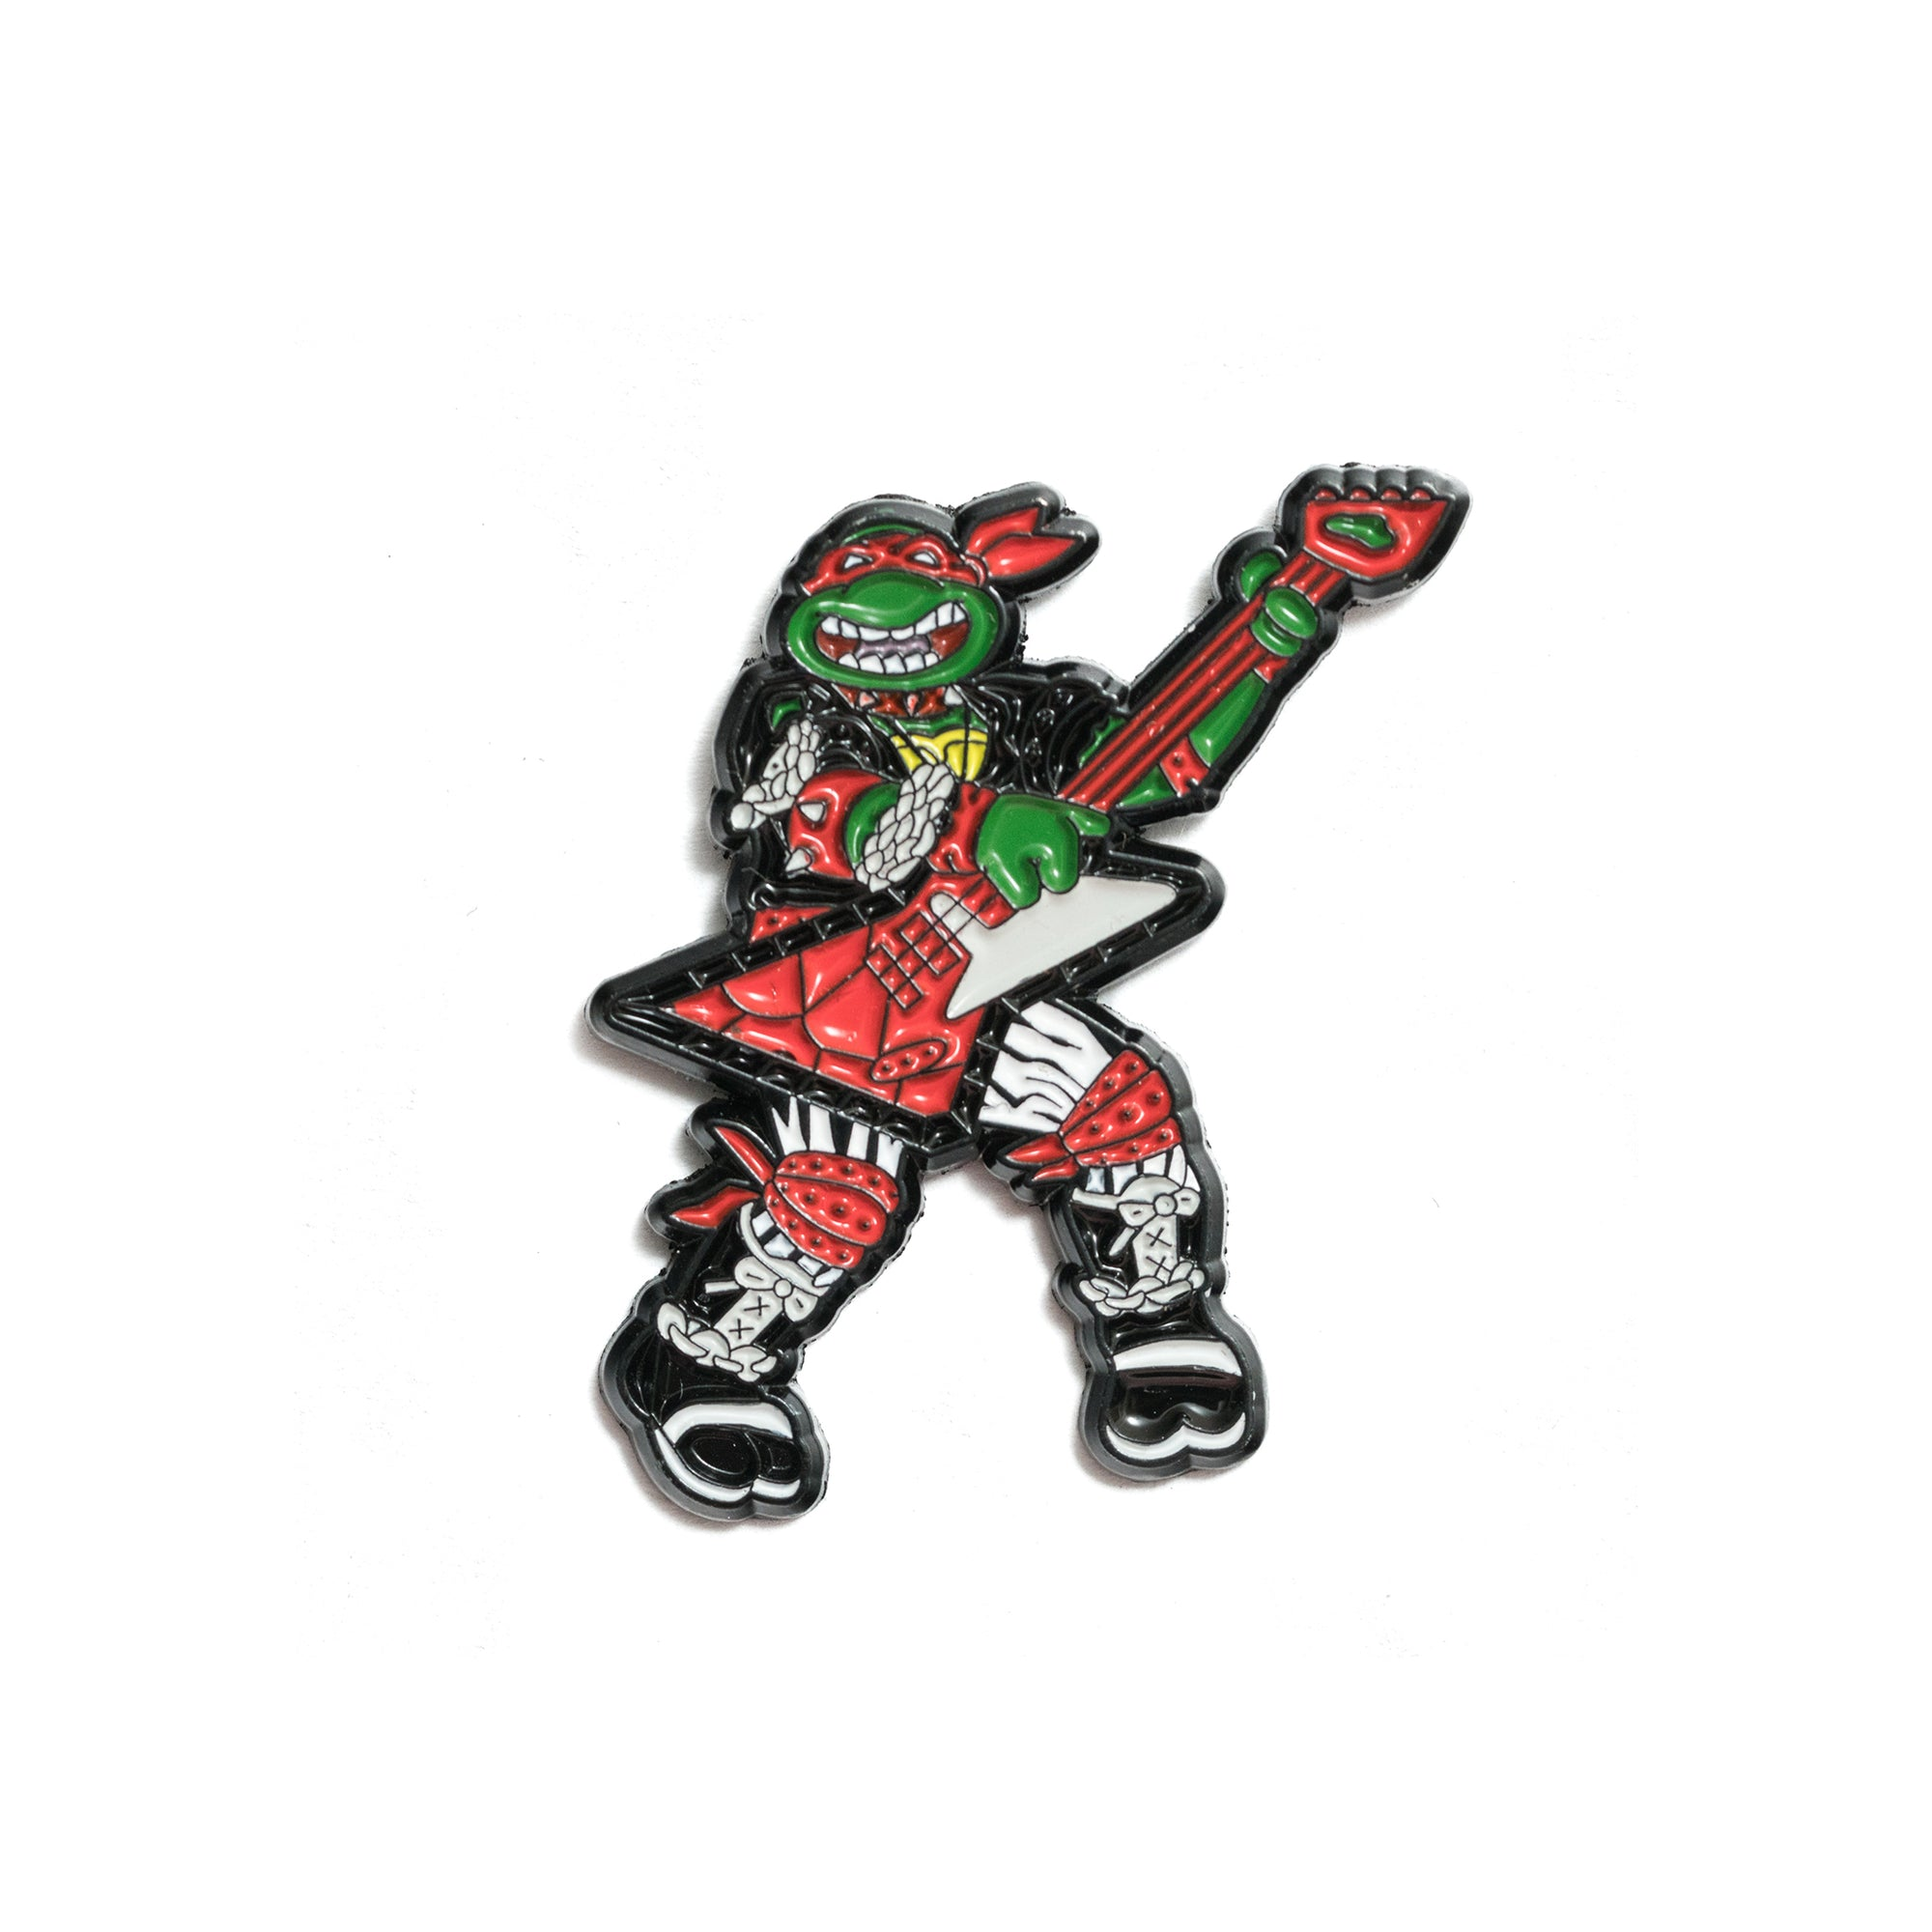 Red Heavy Metal Pin - Black & White Variant